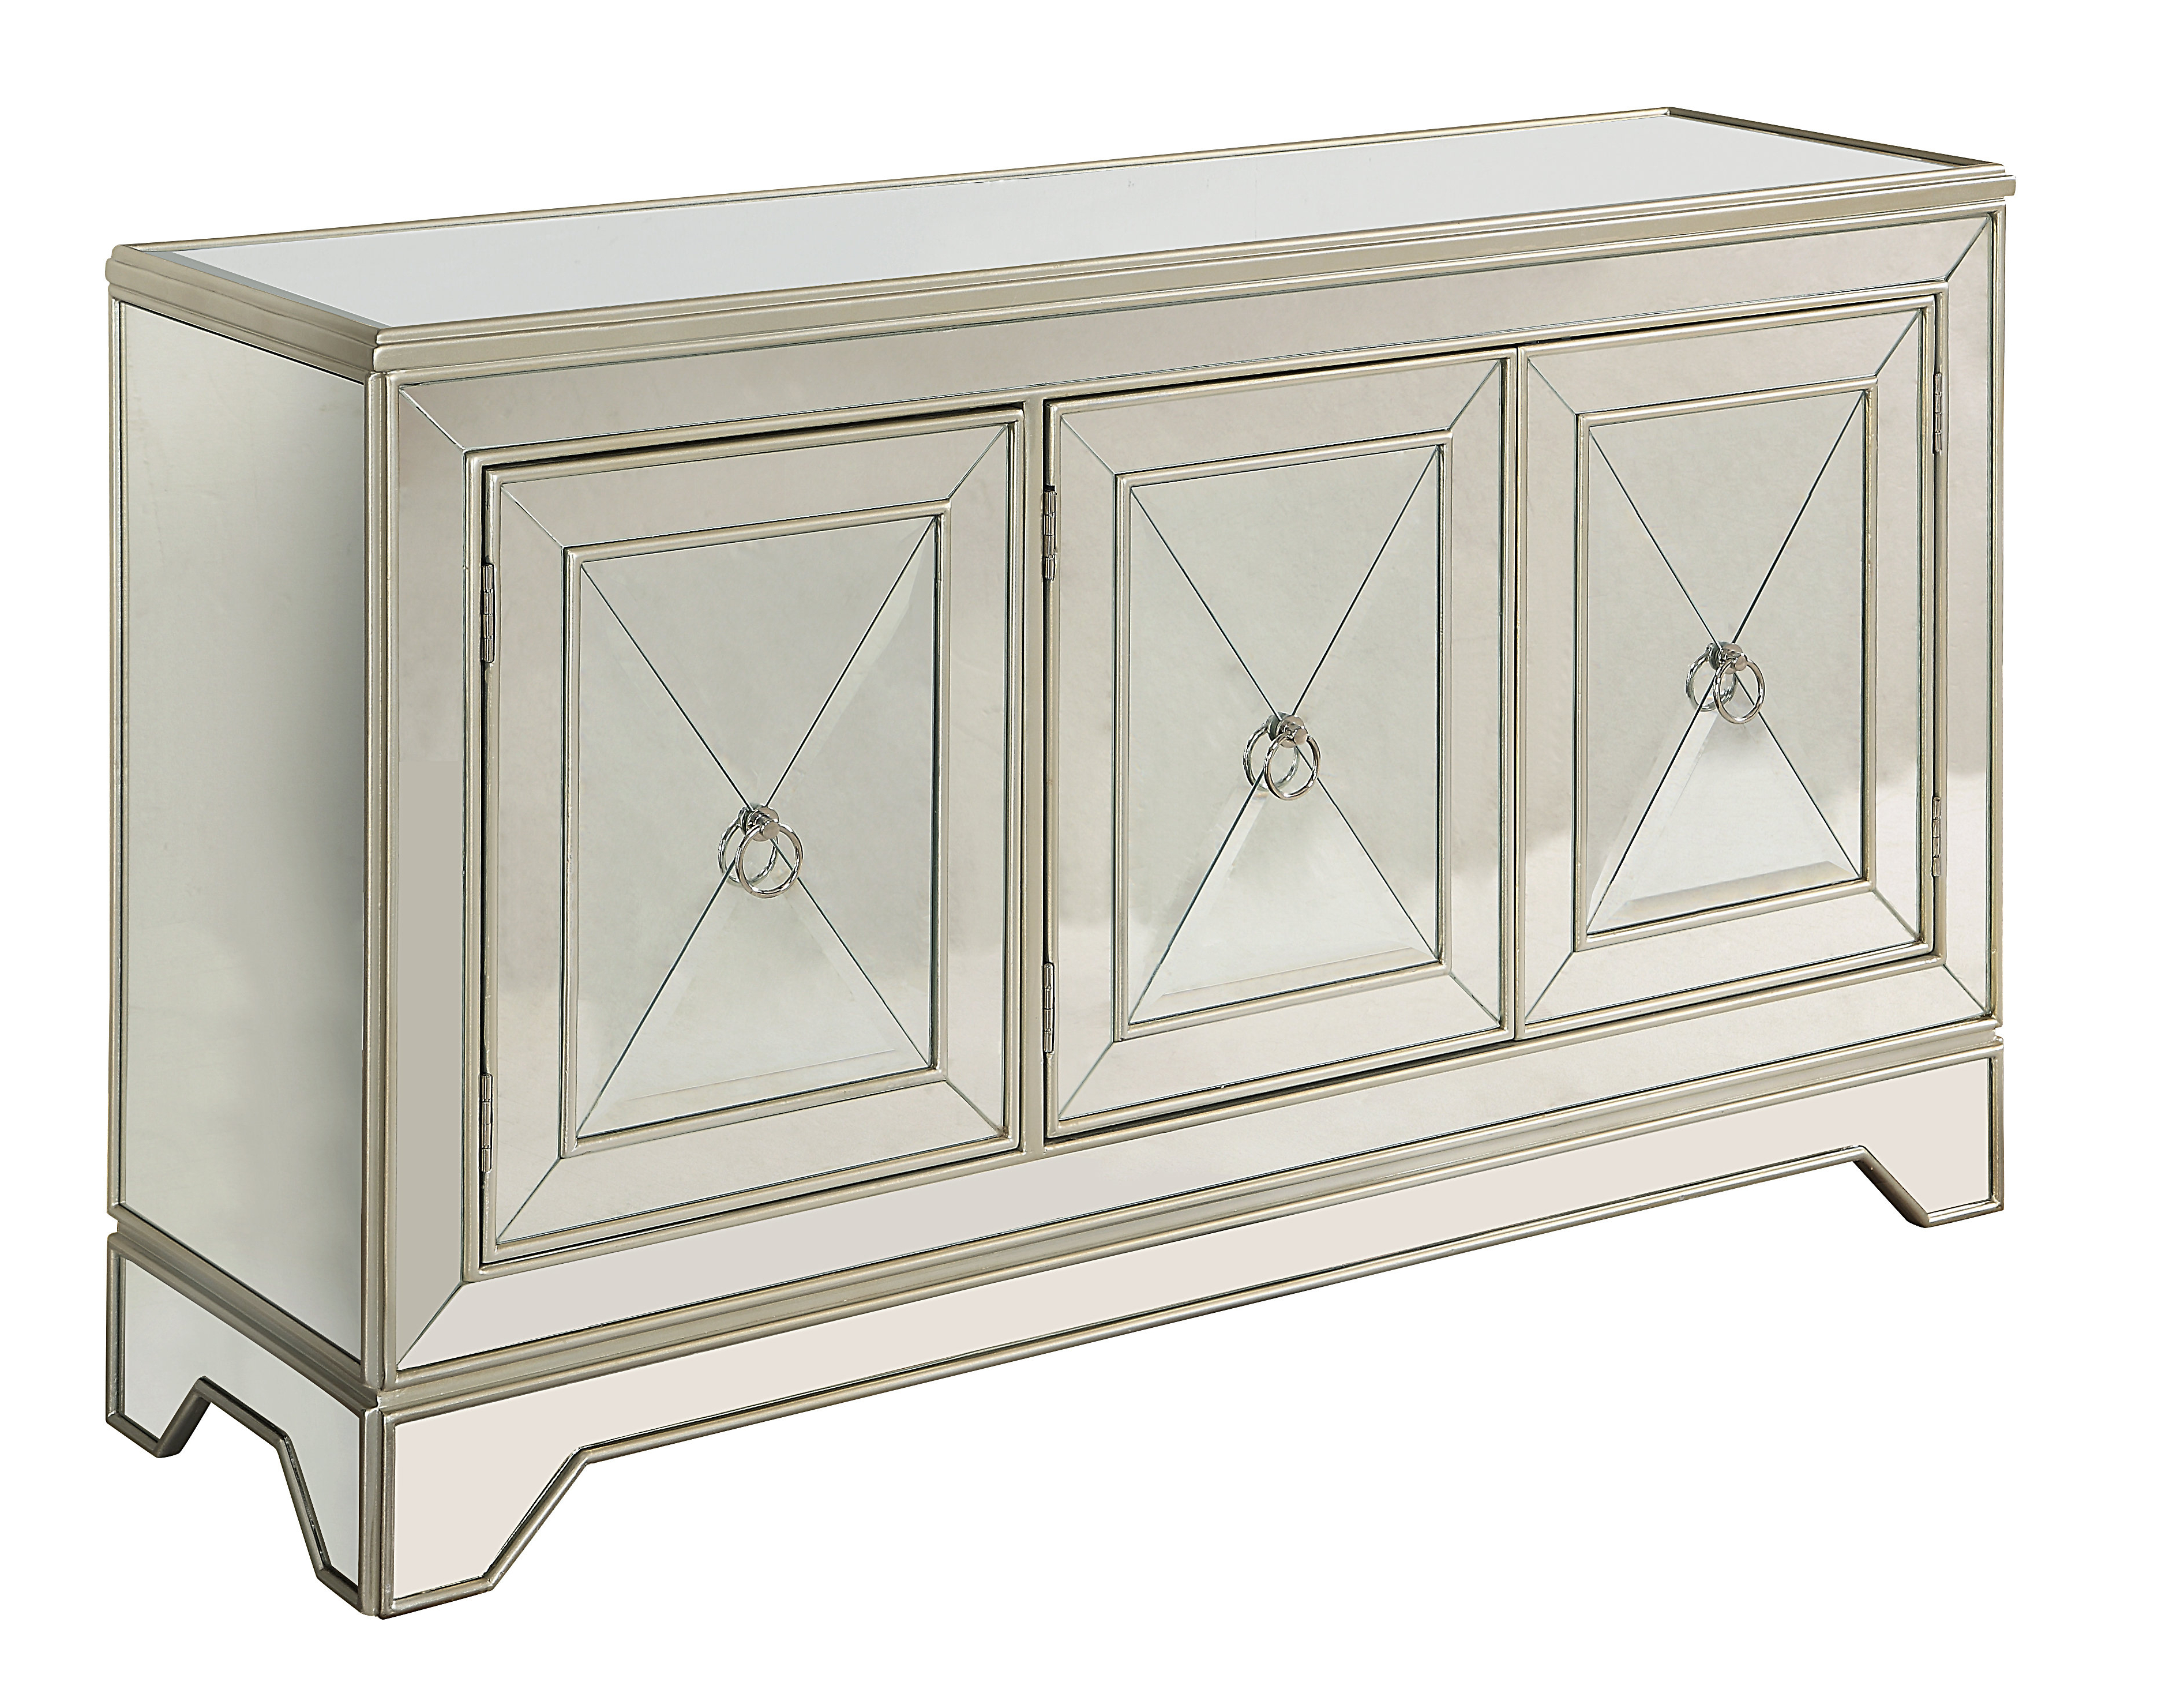 Keeney Sideboard Throughout Trendy Raquette Sideboards (View 19 of 20)